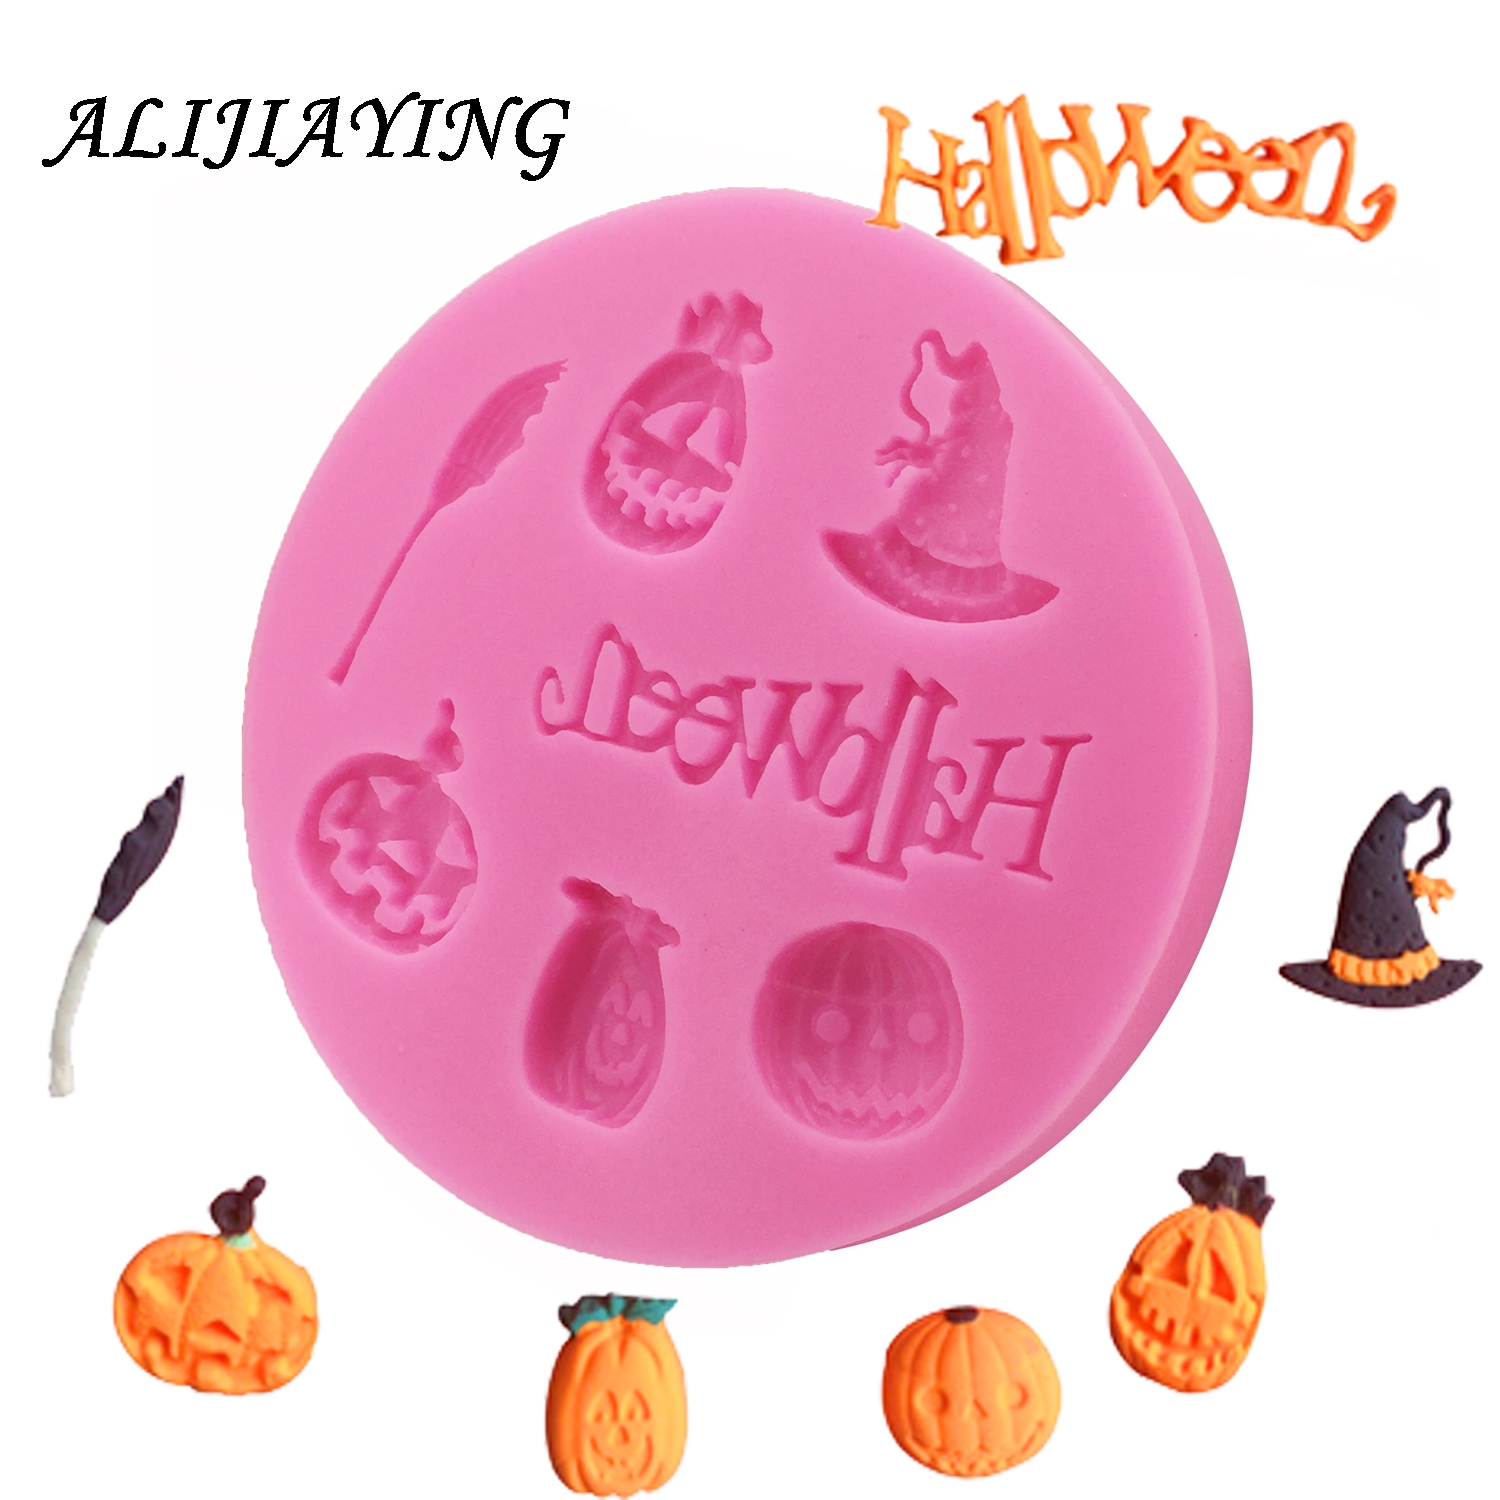 Hot Selling Halloween Pumpkin witch hat broom Silicone Mold Fondant DIY cake Decorating Tools D0016